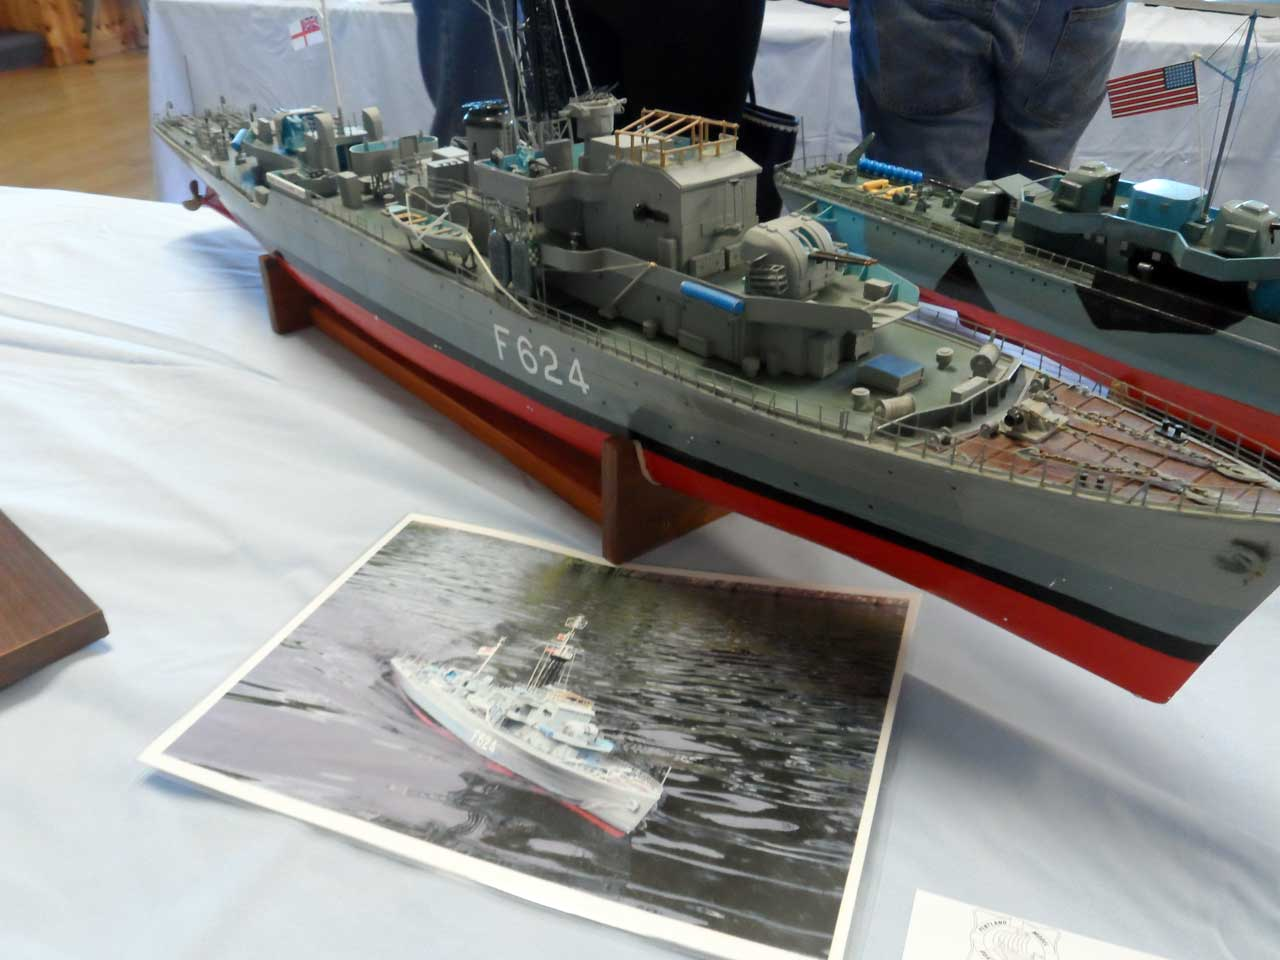 Photo: HMS Morecamb Bay - Frigate - Model Boat Show 2015